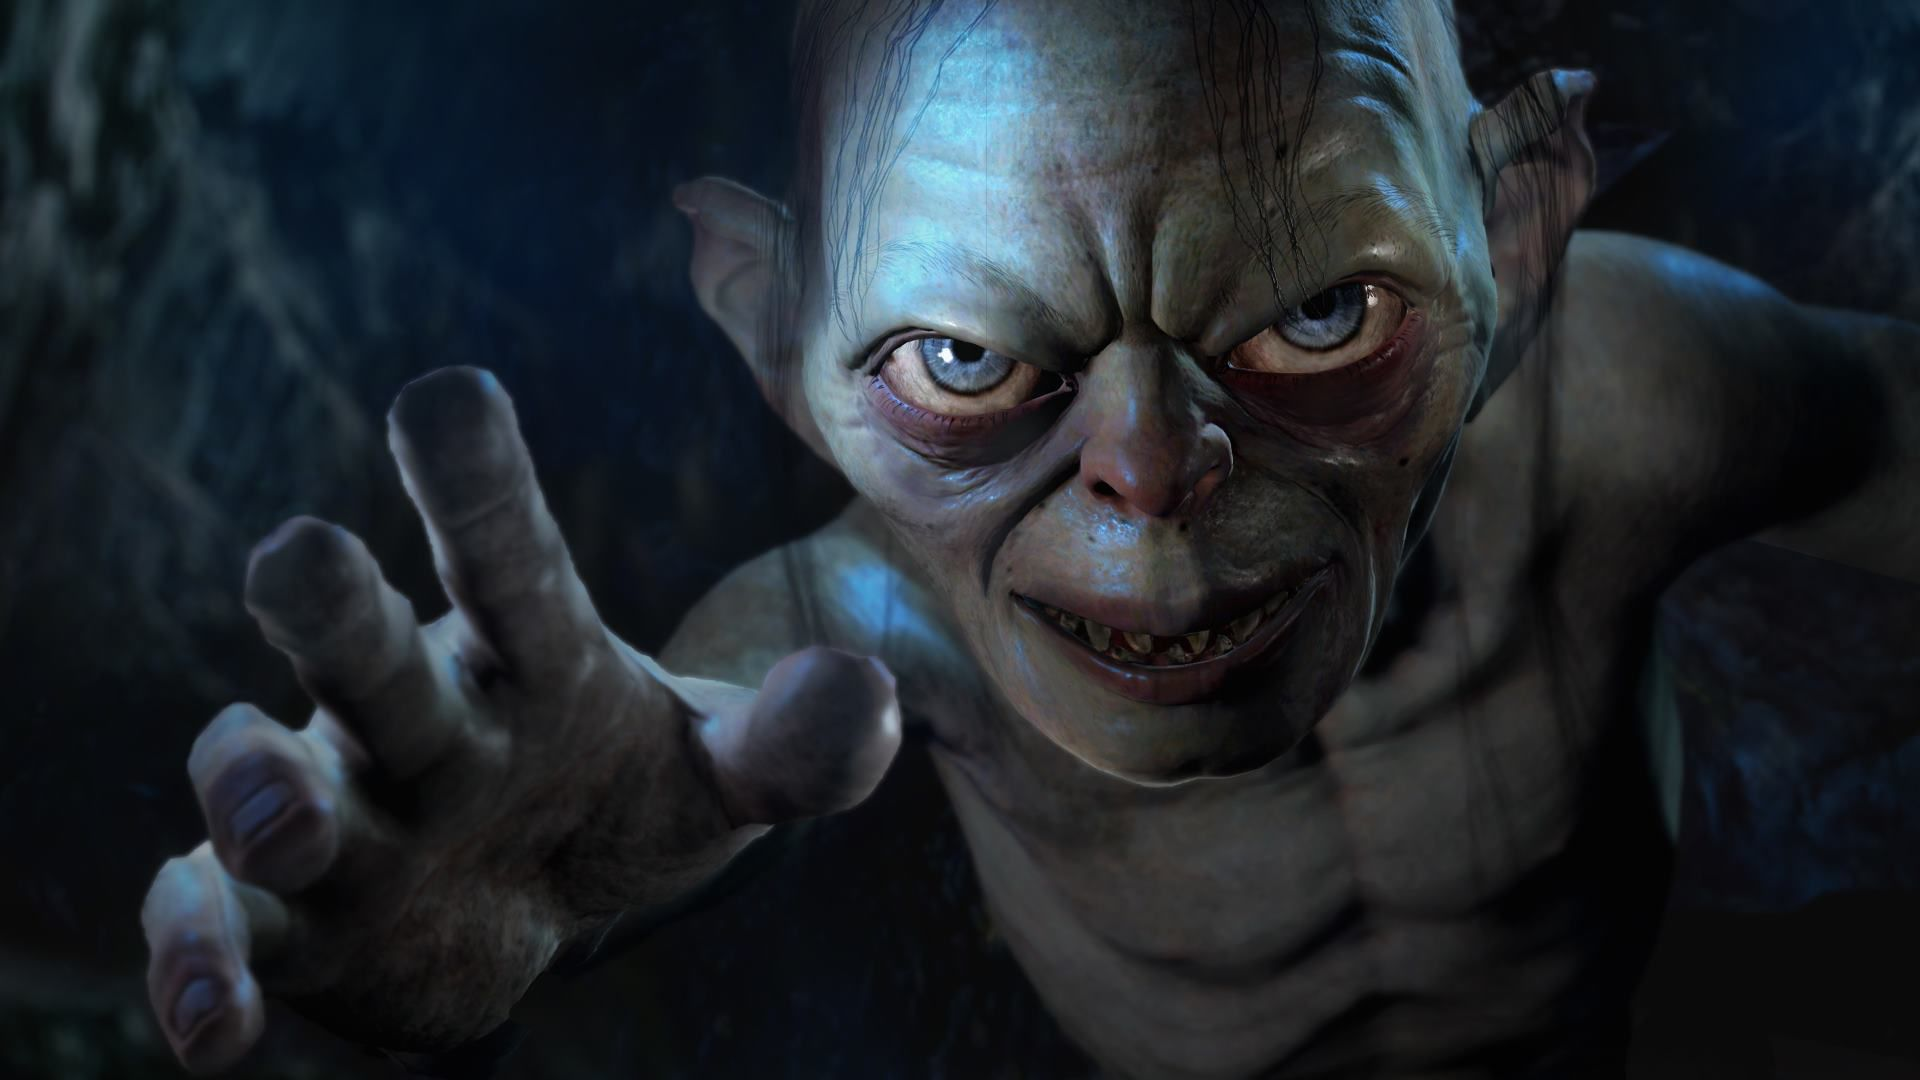 Middle-earth: Shadow of Mordor review d 1080